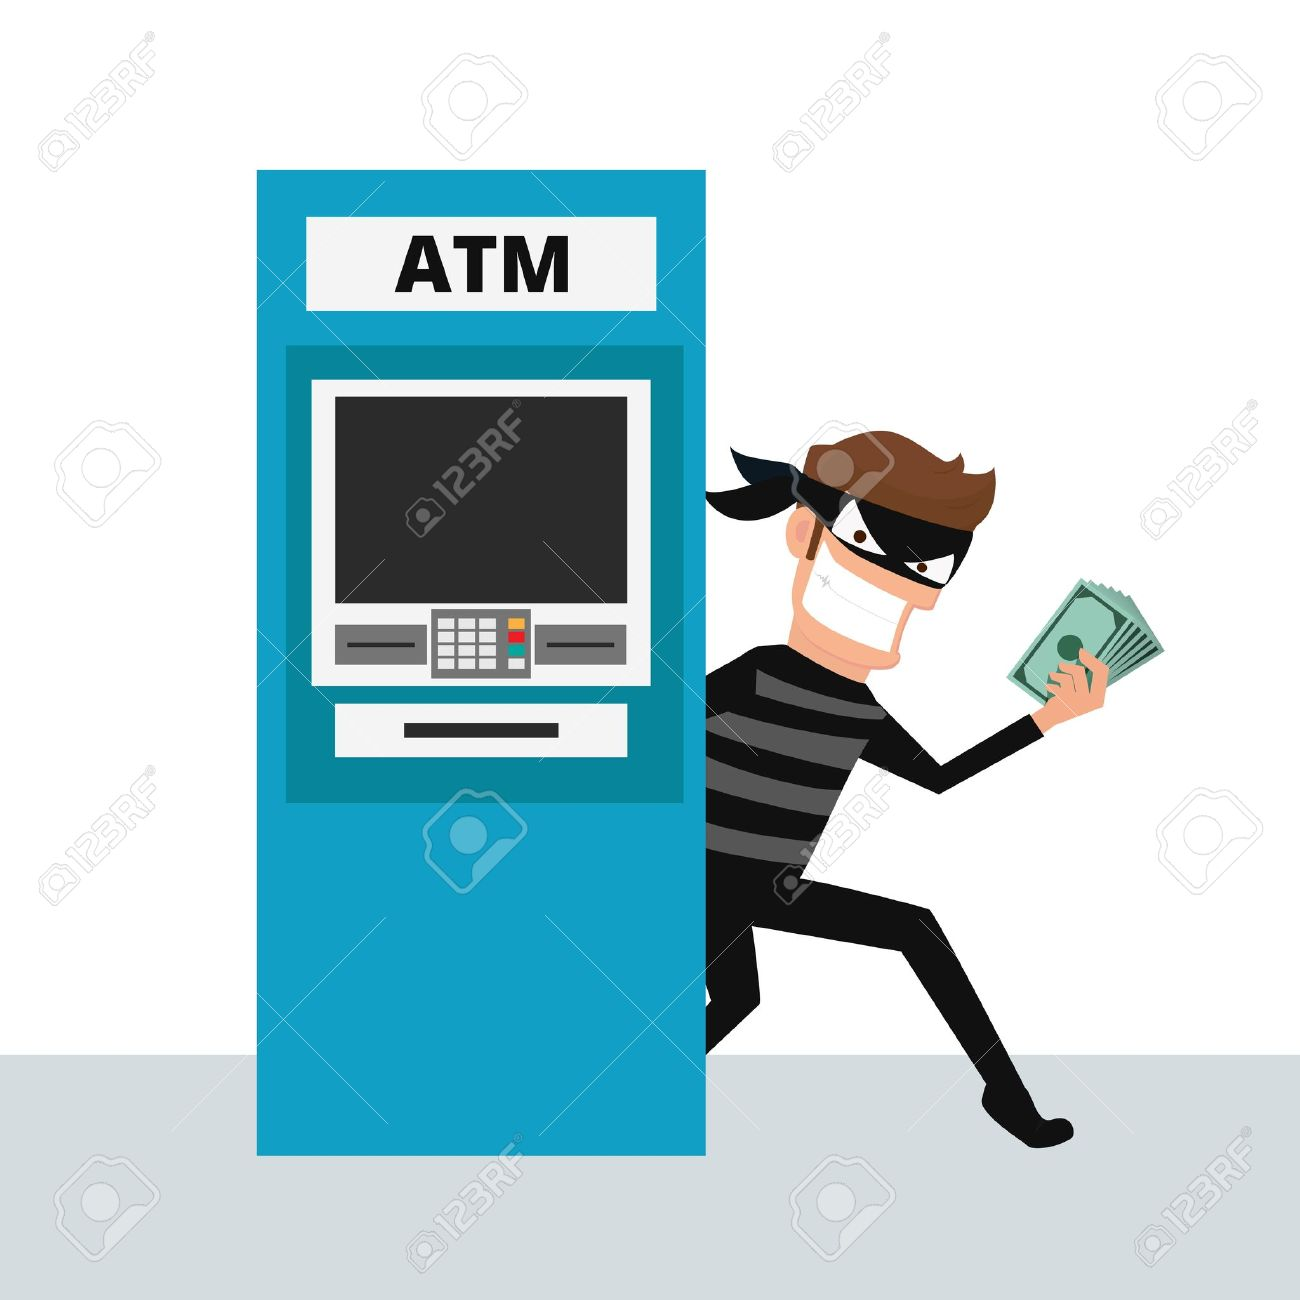 Atm hacking. How to hack atm machine. Atm hacking youtube.